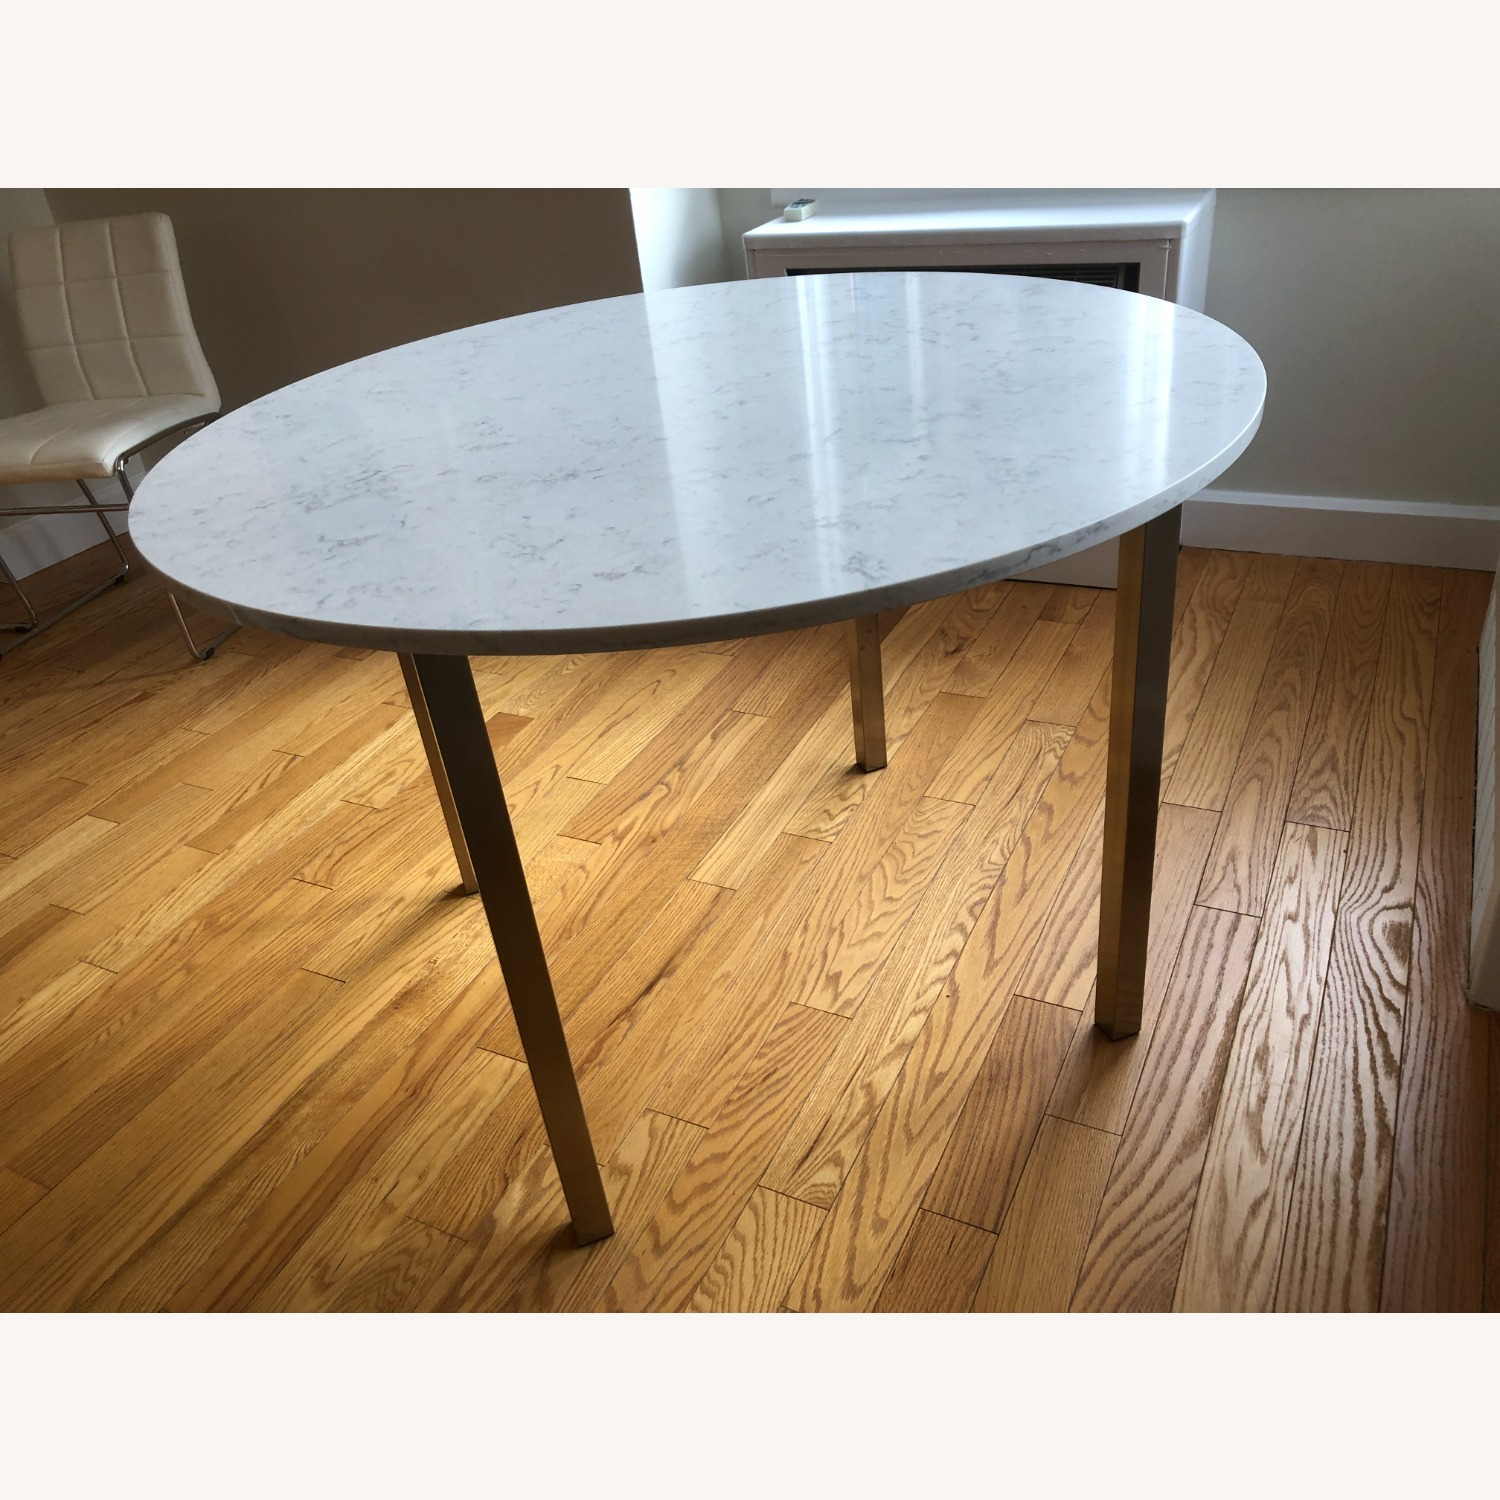 Room & Board Round Dining Table - image-1